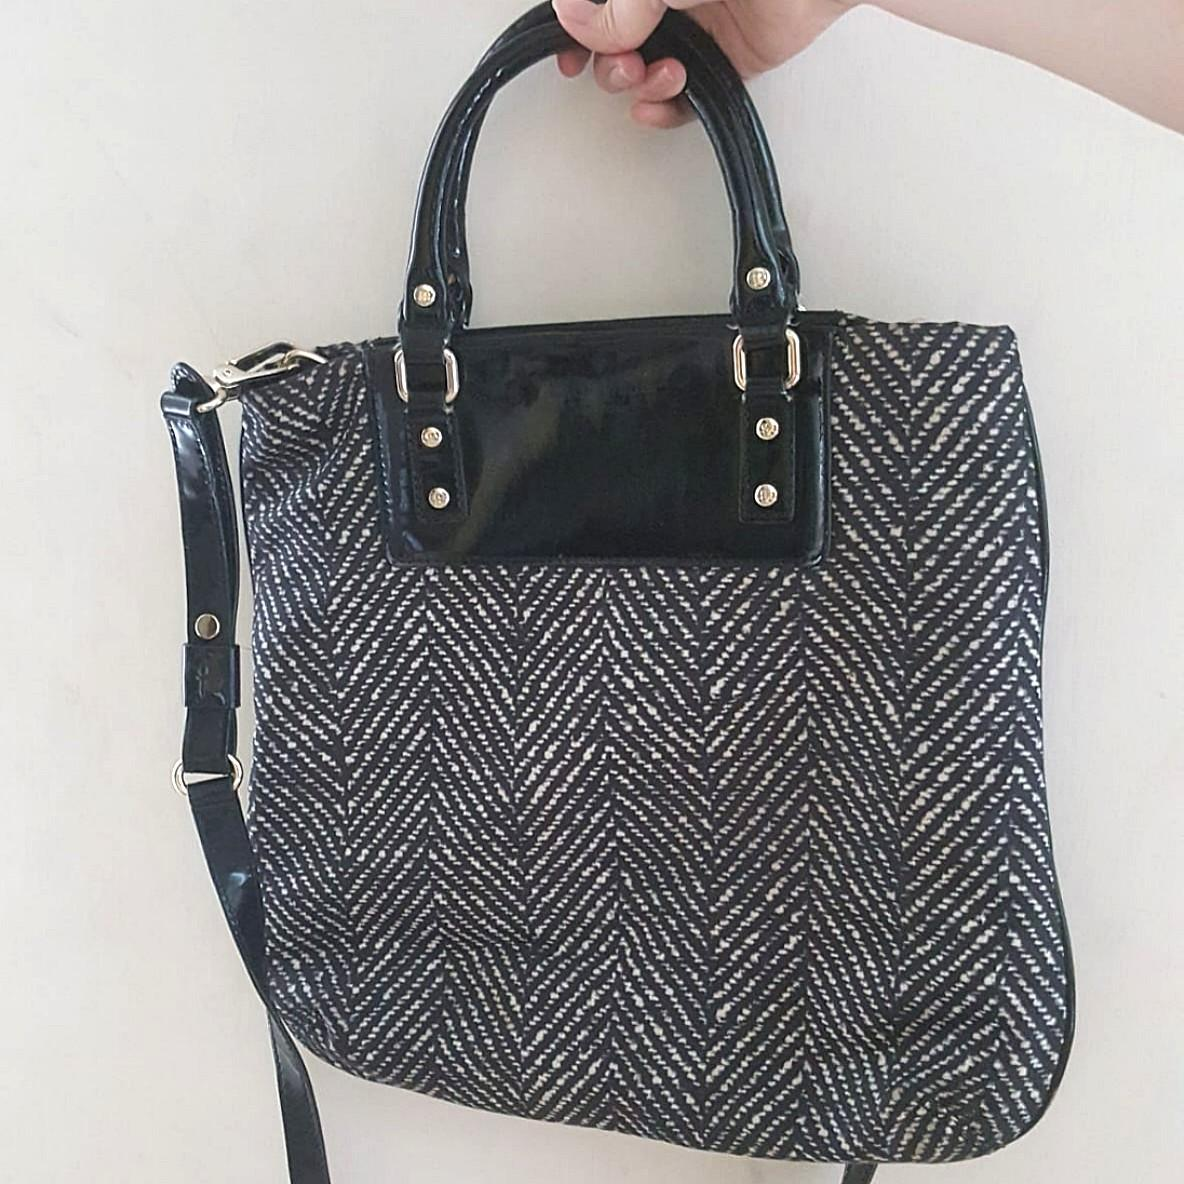 Kate Spade Monochrome Patterned Nylon Crossbody Bag ORIGINAL from store (worn 1x/no defect &stain)